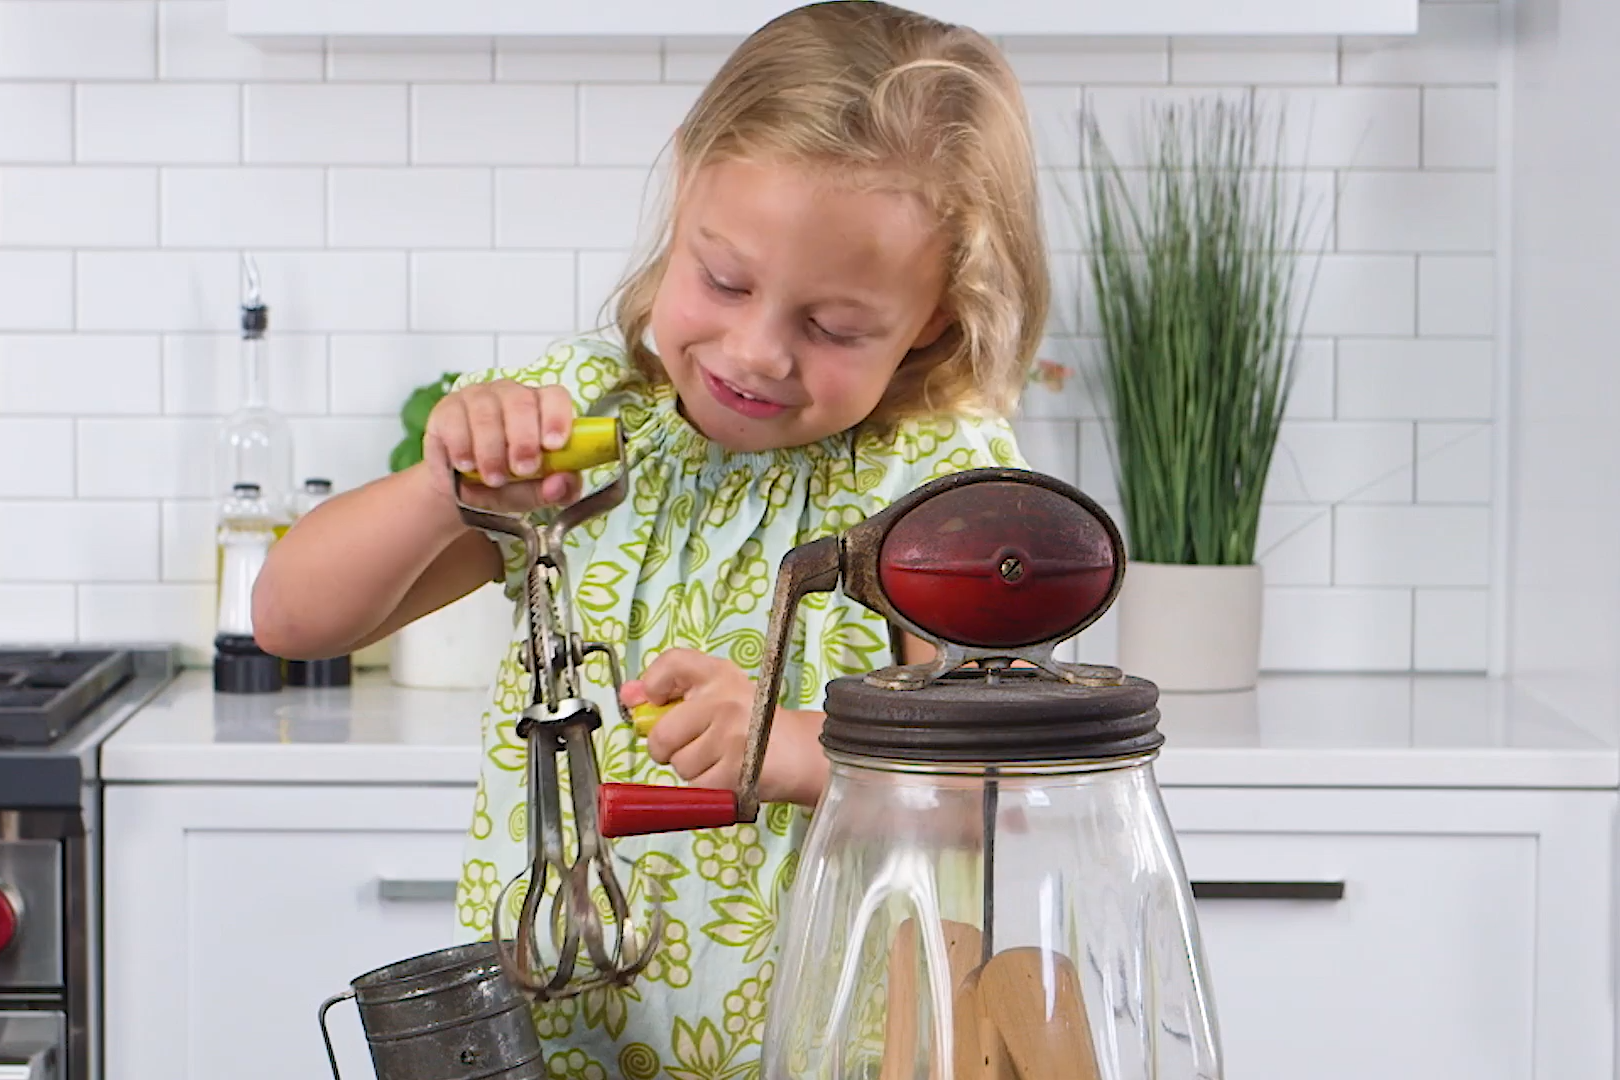 Southern Kids Reacting To Vintage Kitchen Tools Is The Funniest Thing You'll See Today